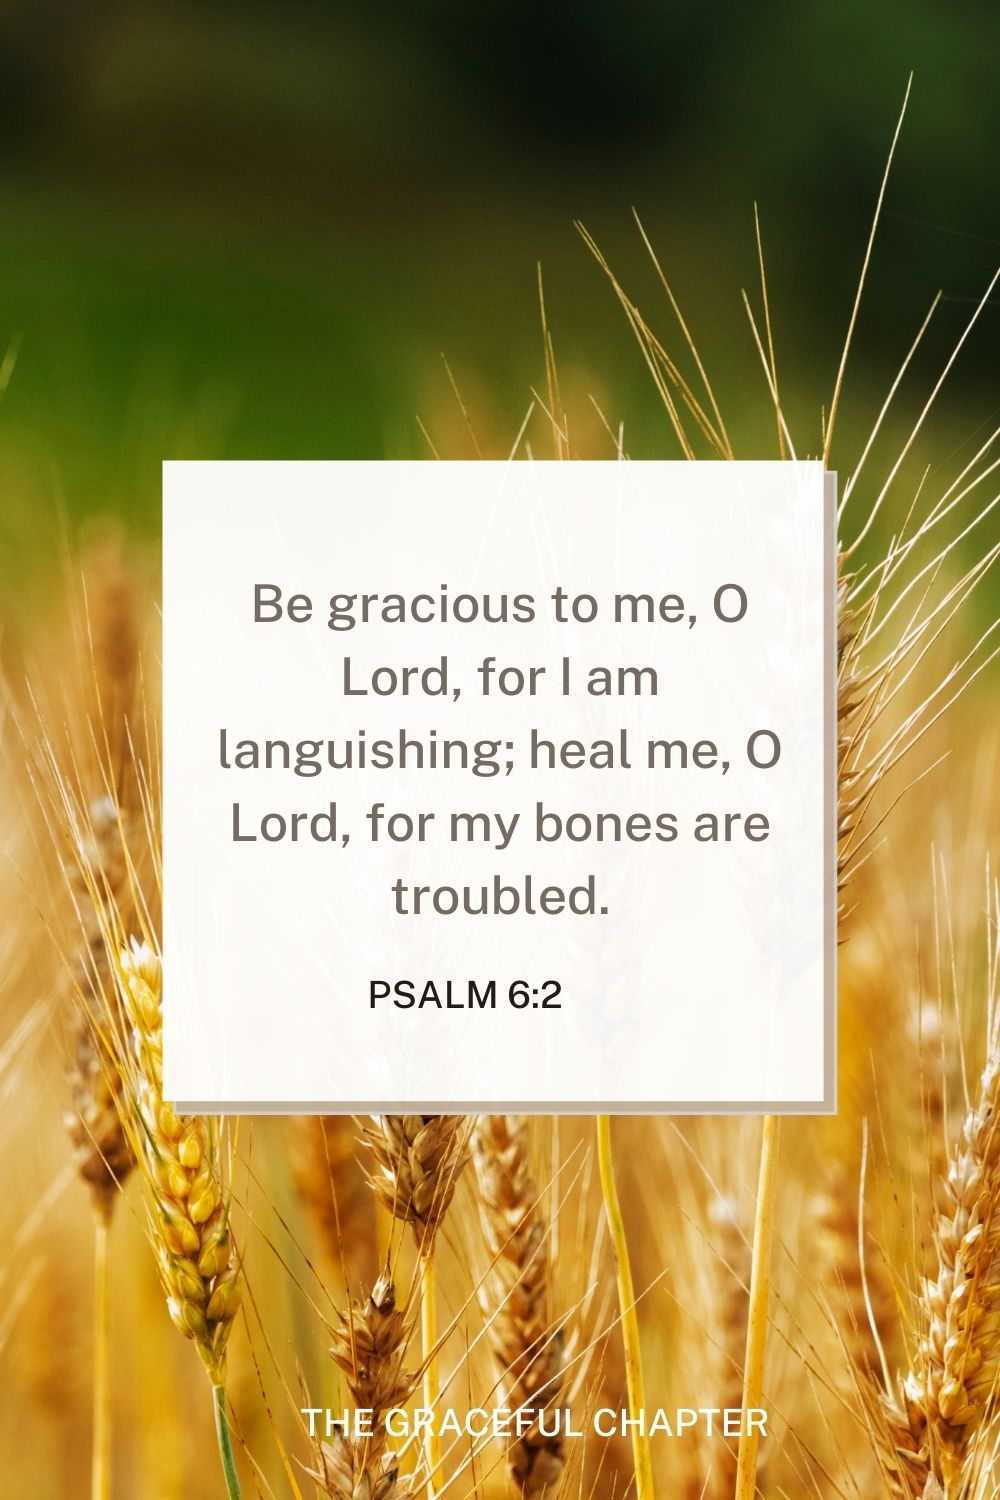 Be gracious to me, O Lord, for I am languishing; heal me, O Lord, for my bones are troubled. Be gracious to me, O Lord, for I am languishing; heal me, O Lord, for my bones are troubled. Psalm 6:2